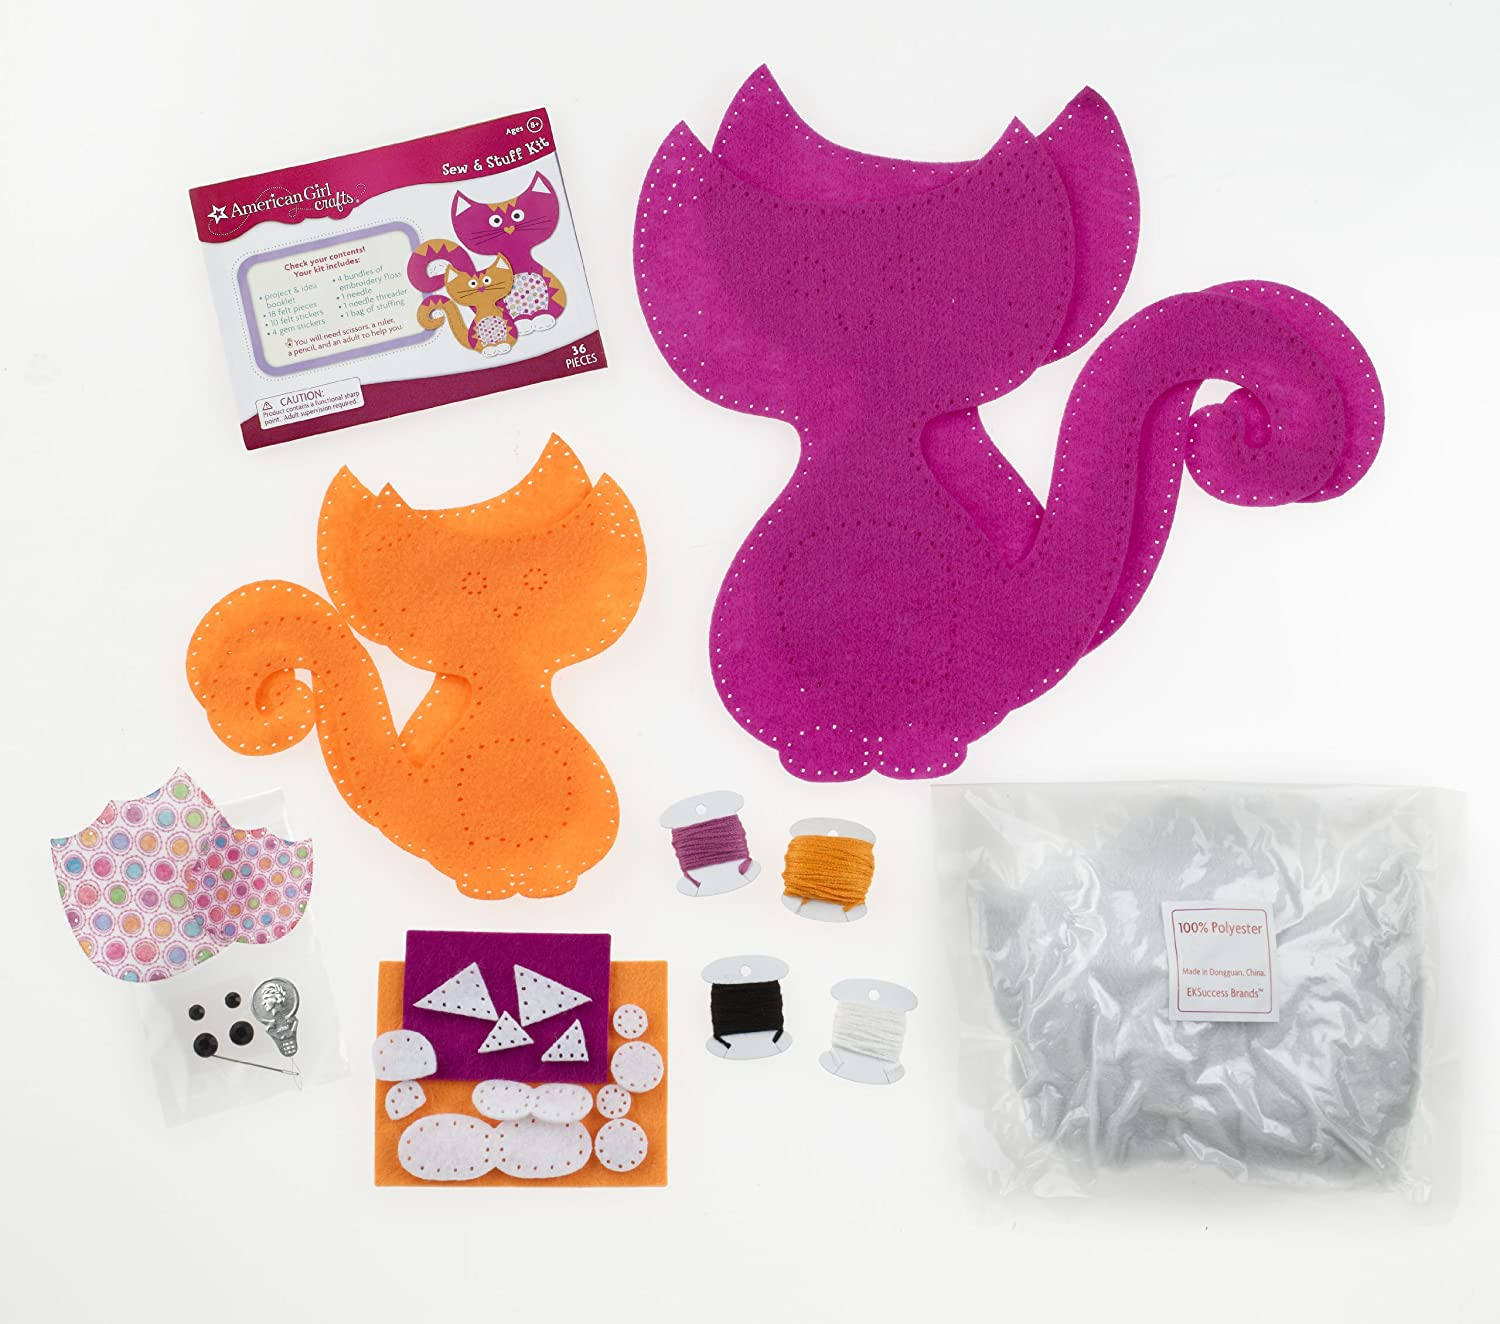 American Girl Crafts Cat Sew and Stuff Activity Kit DIY Cat Stuffed Animals CSS Industries Inc and its affiliates 30-677395